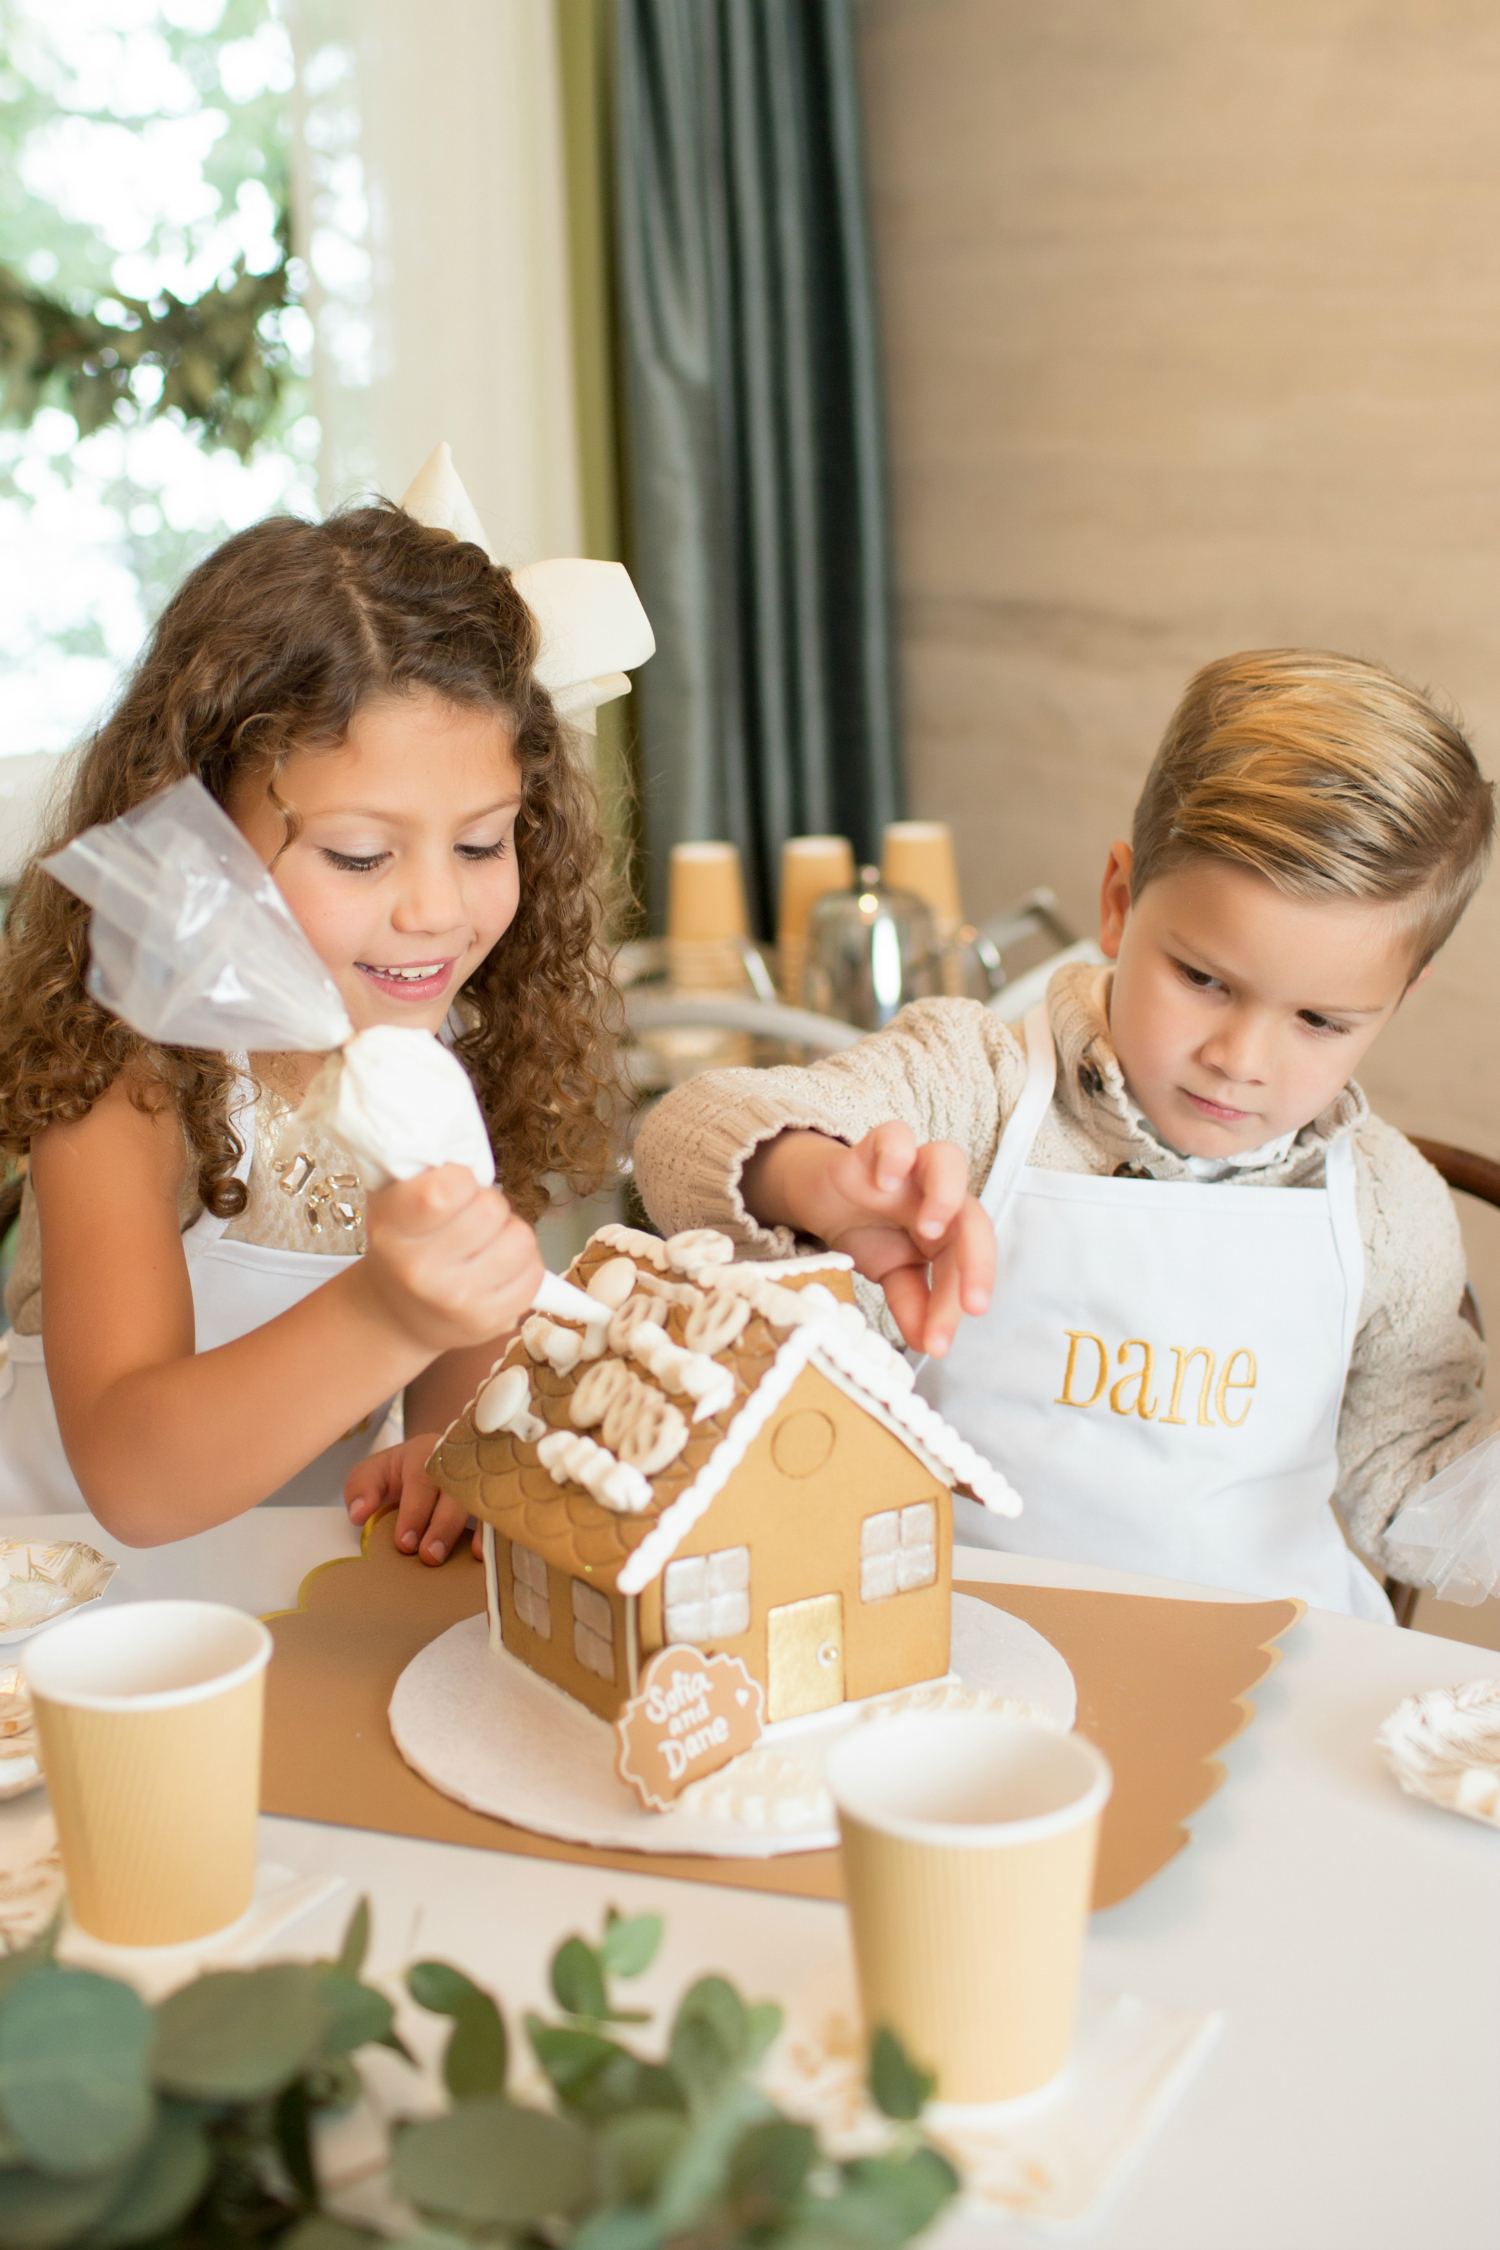 One Stylish Party Shutterfly Gingerbread Dream 2017-84